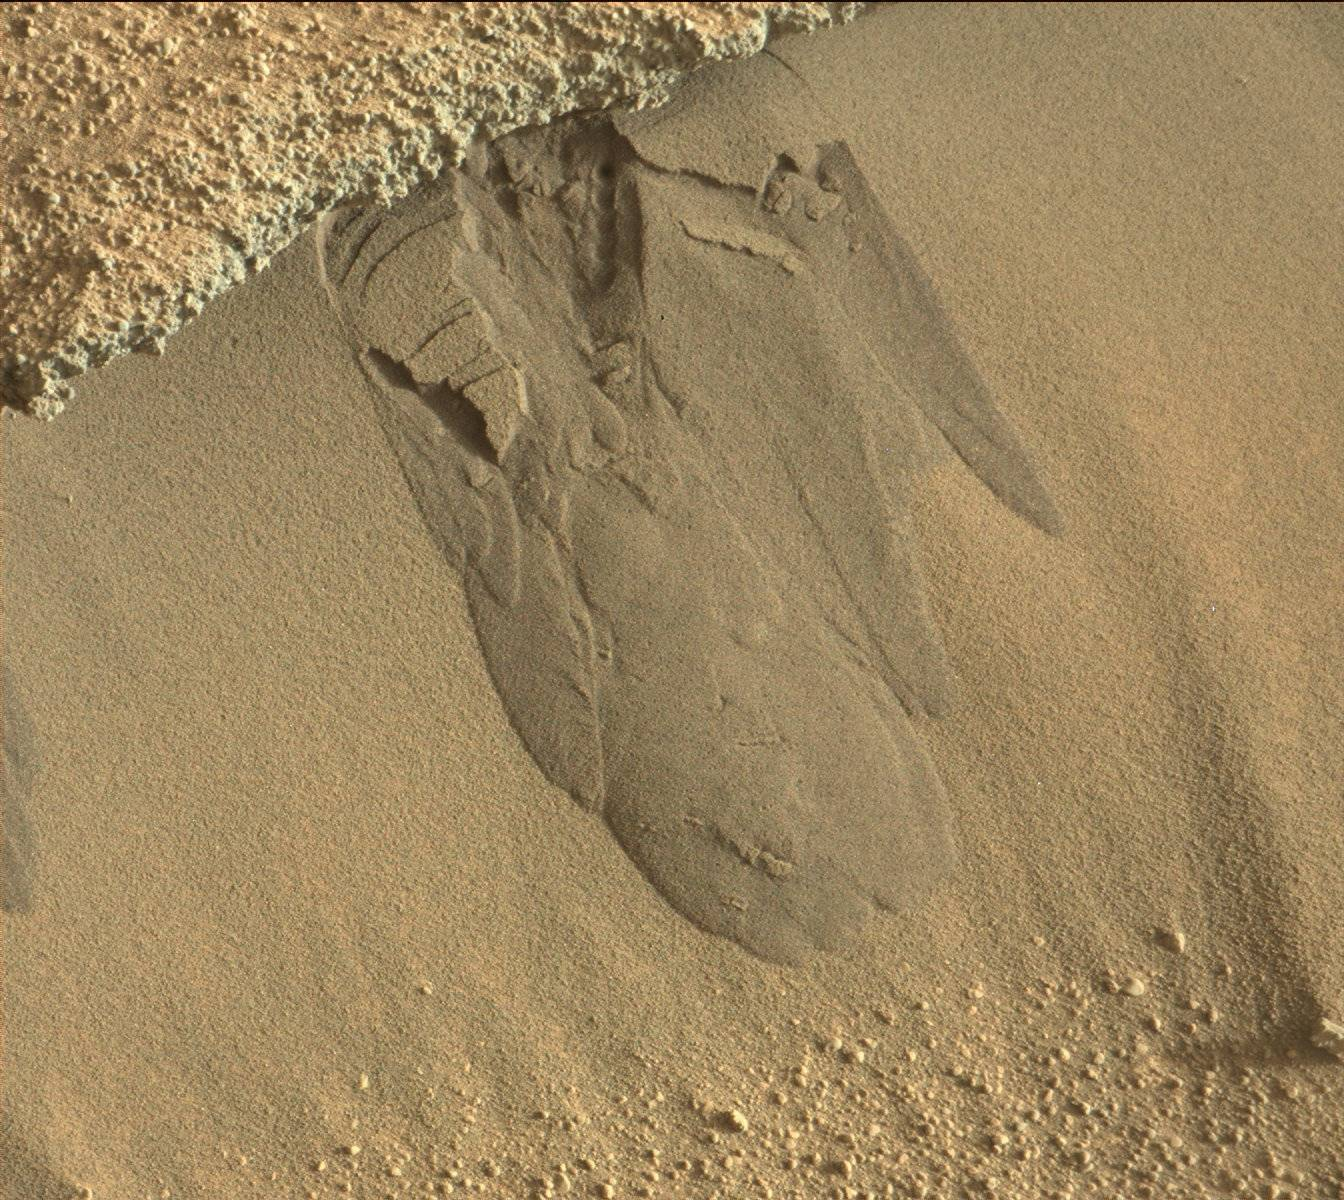 Nasa's Mars rover Curiosity acquired this image using its Mast Camera (Mastcam) on Sol 584